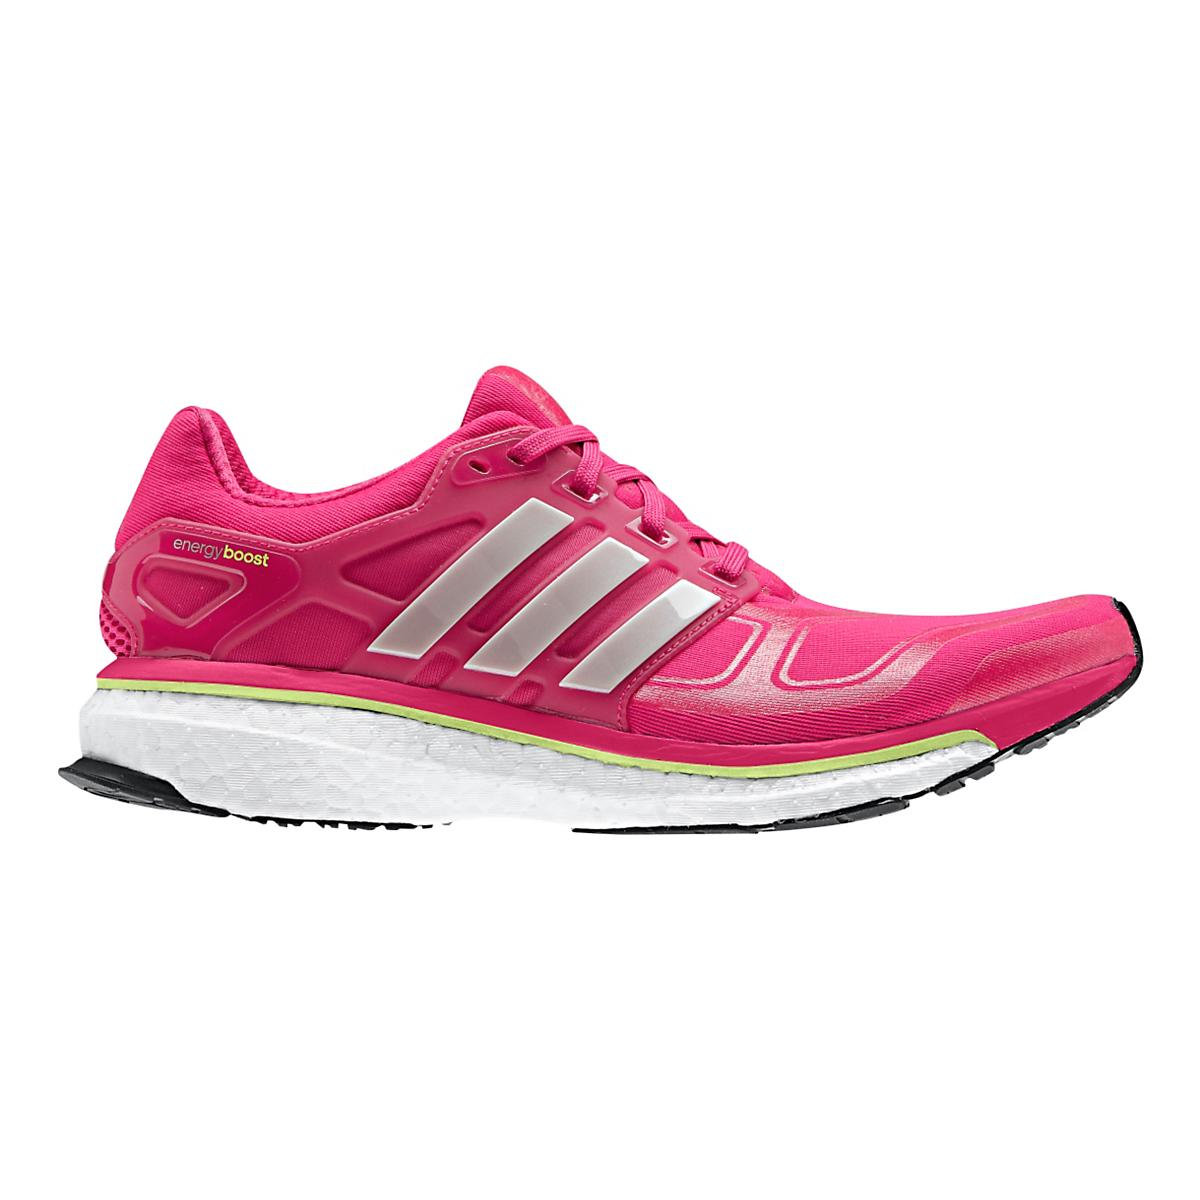 adidas energy boost 2 womens